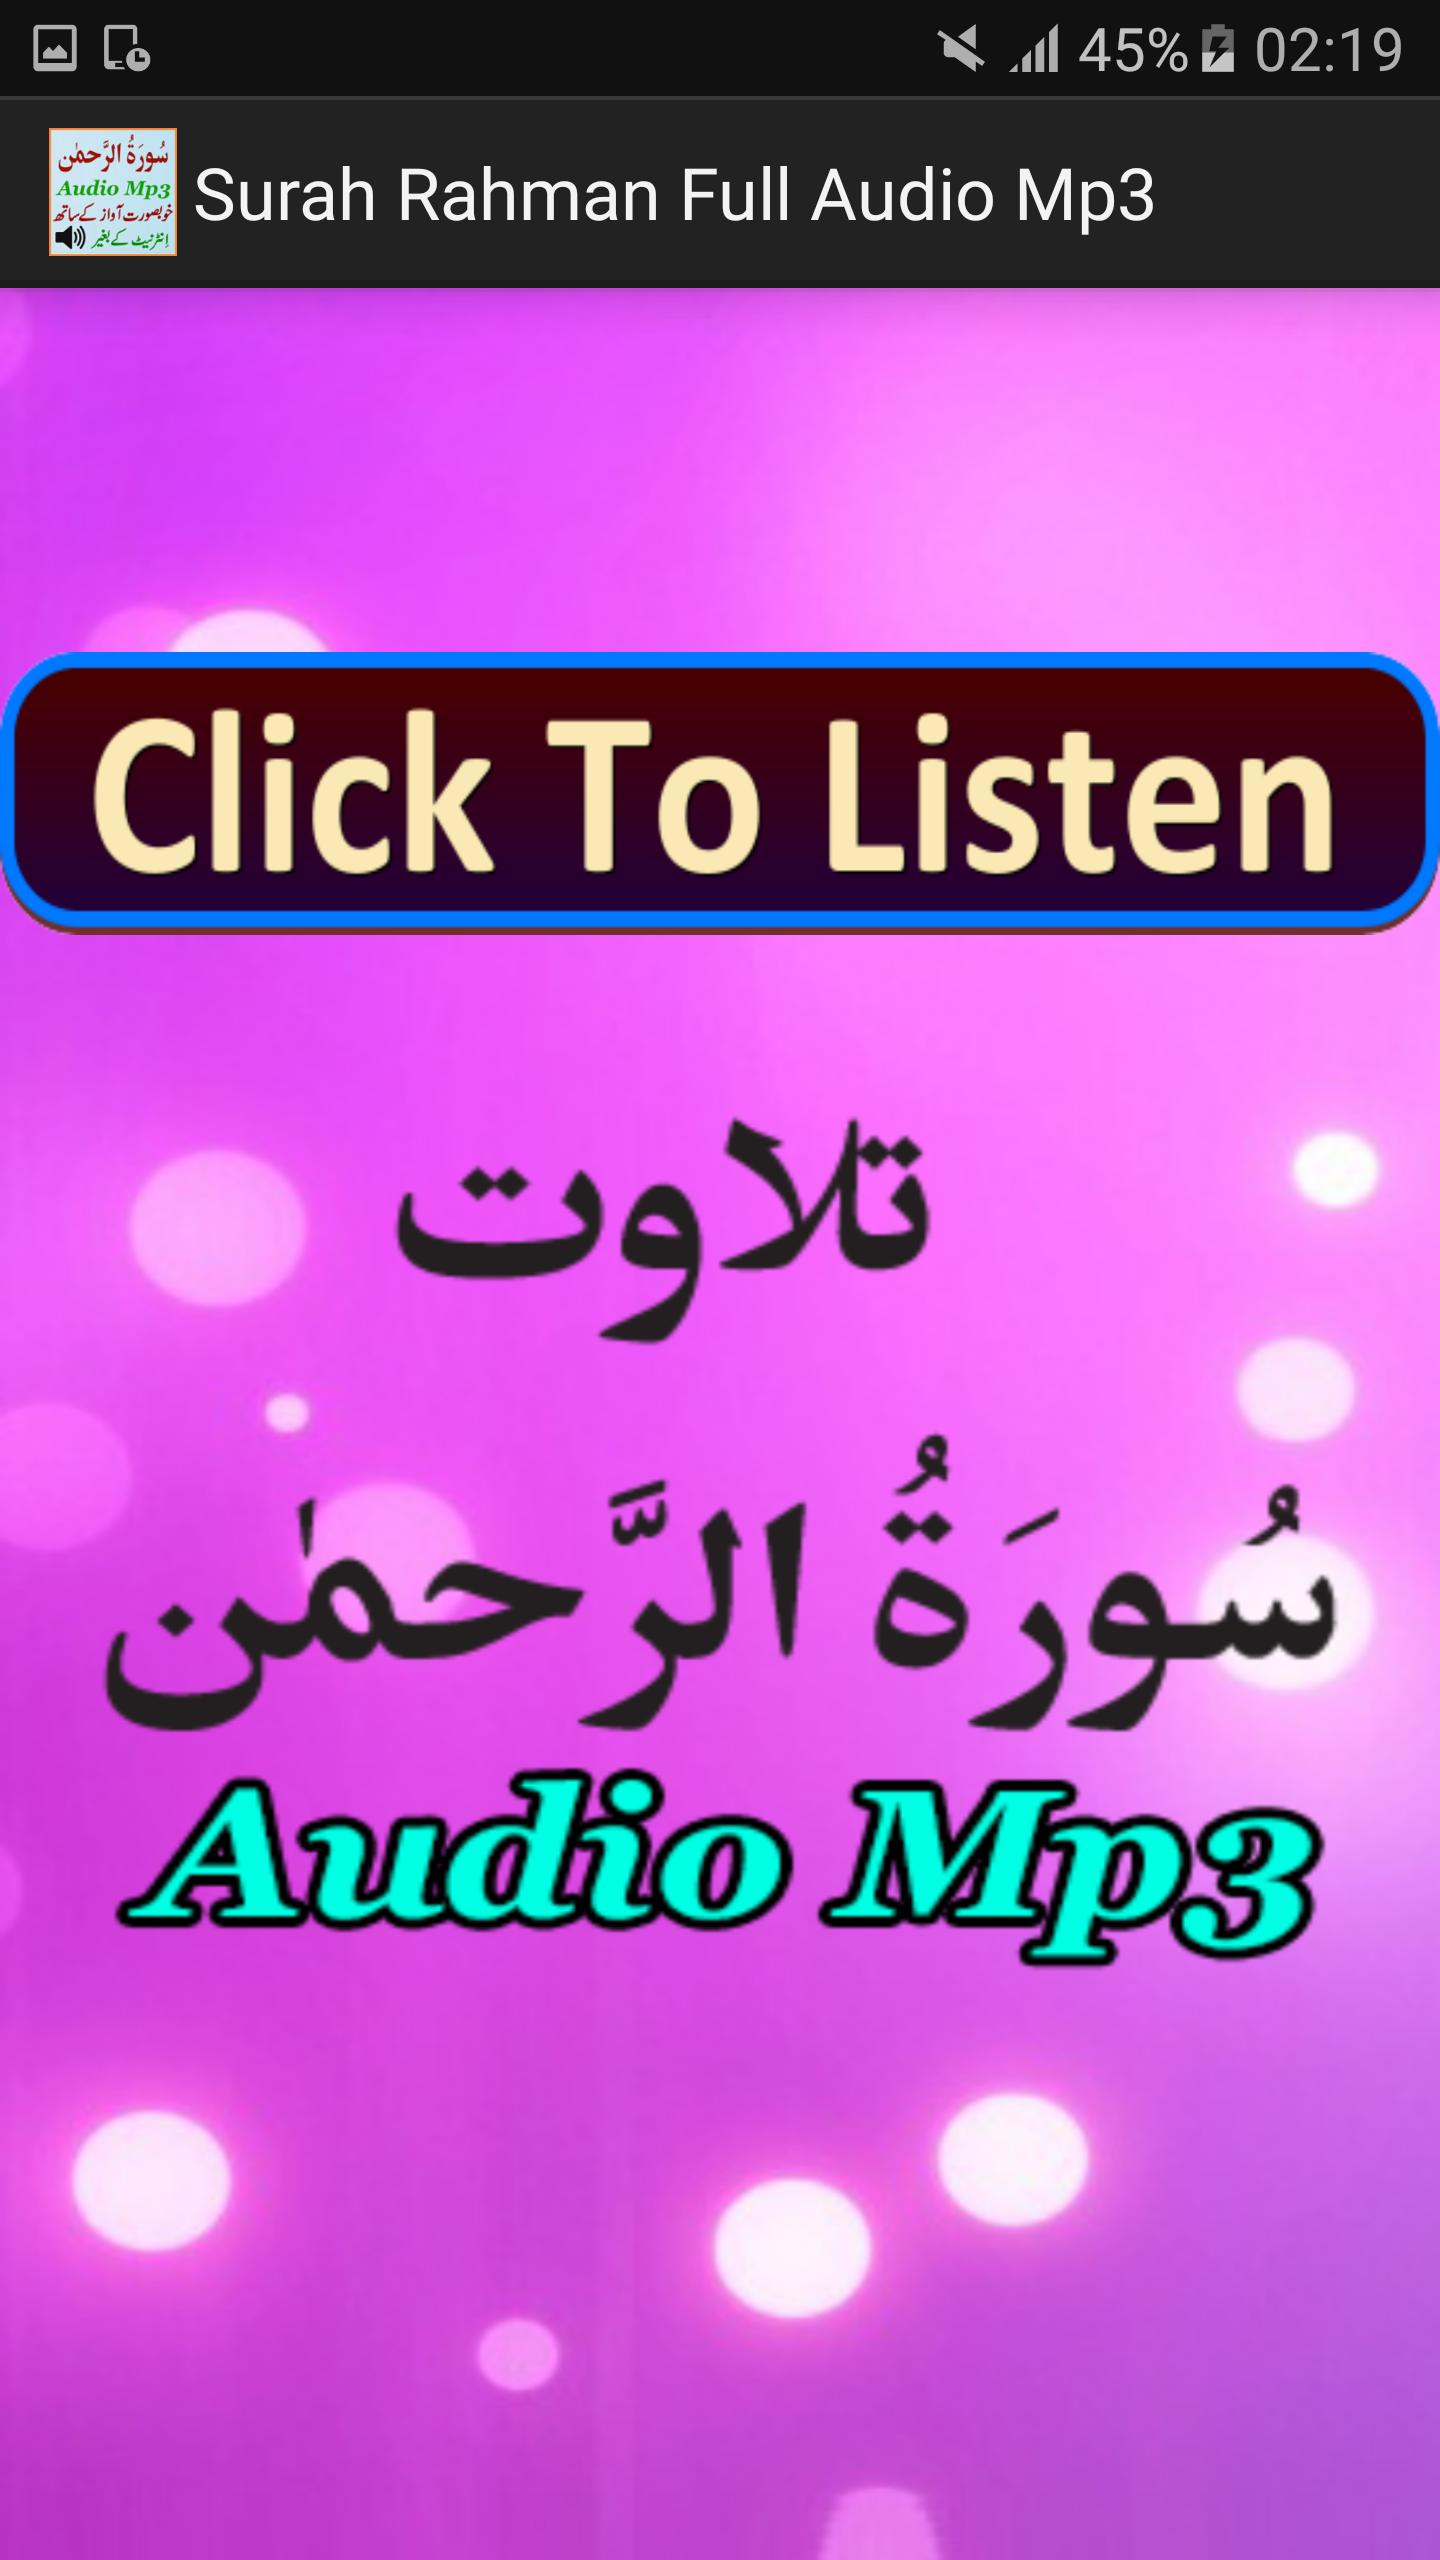 Surah Rahman Full Audio Mp3 for Android - APK Download